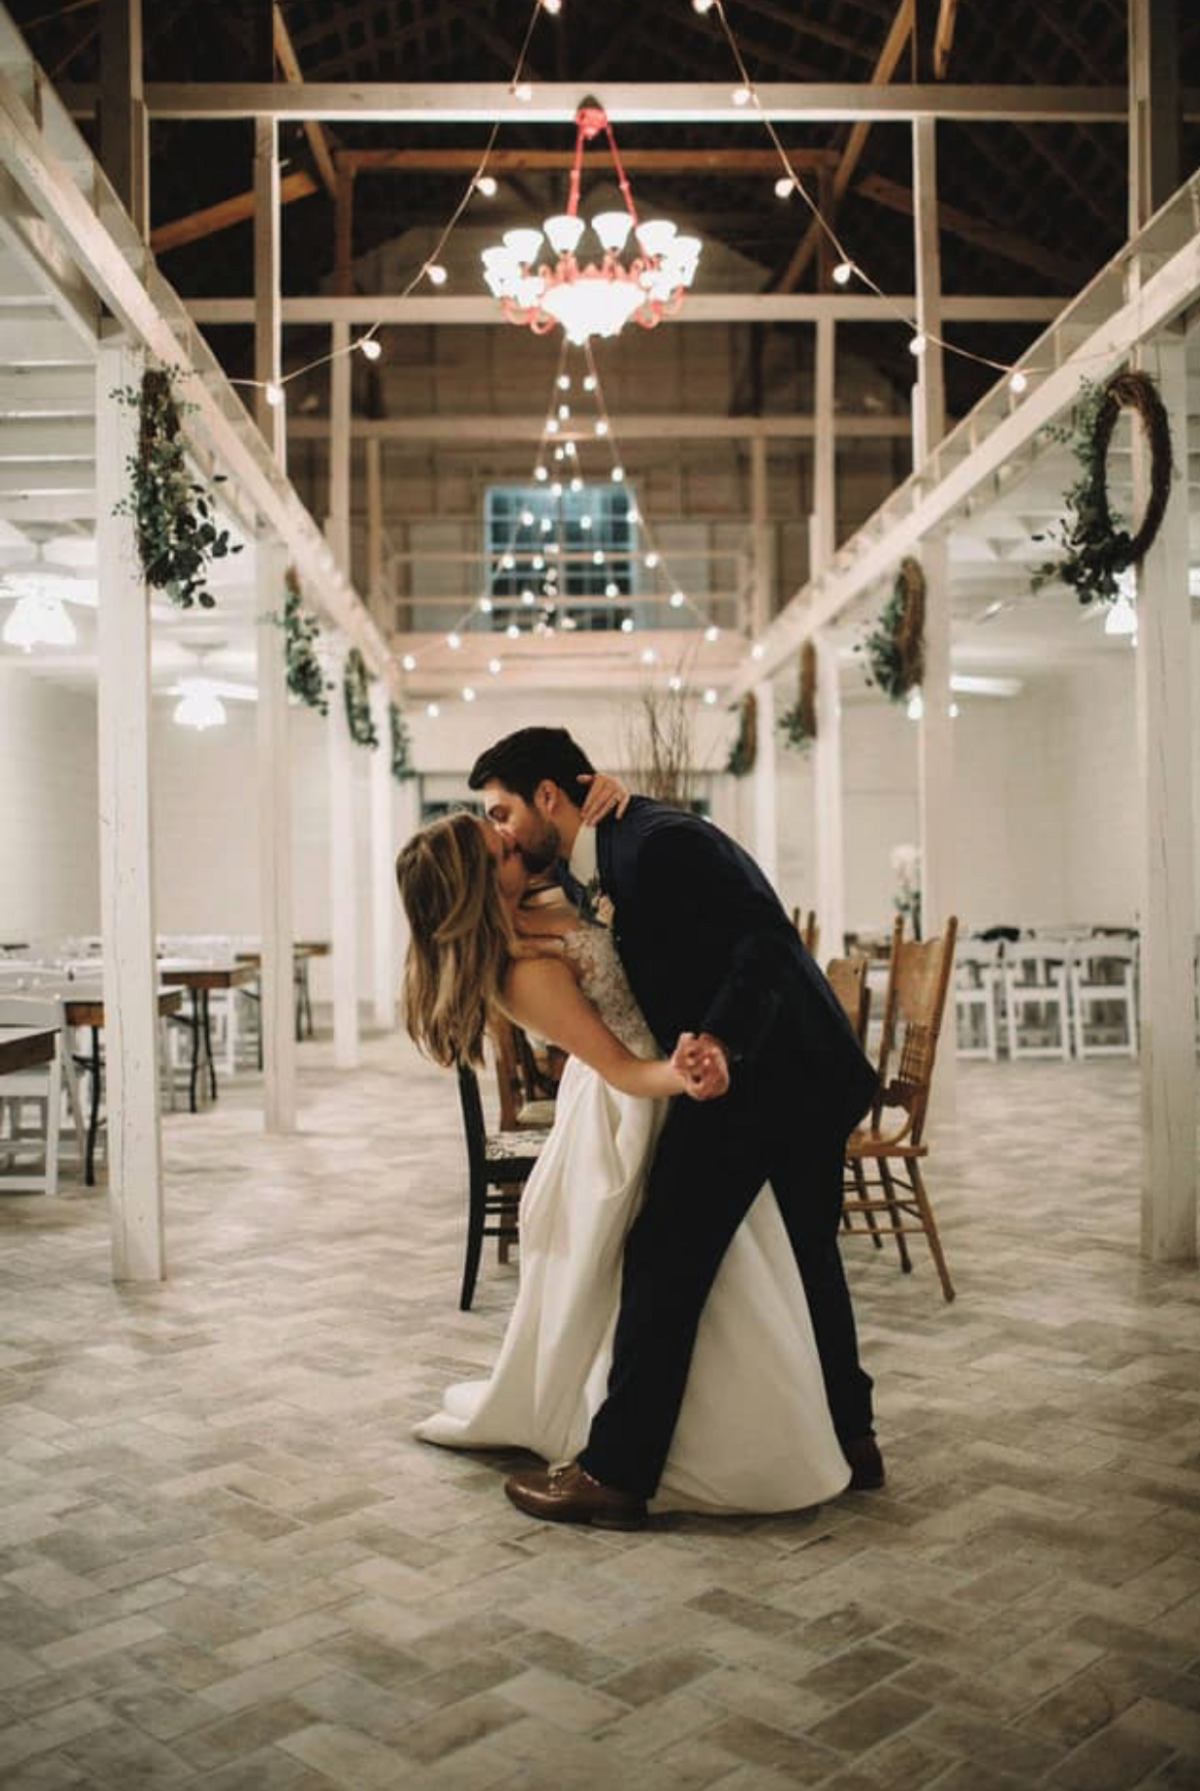 A bride and groom kissing during their last dance of the night in the Grand Texana's reception hall